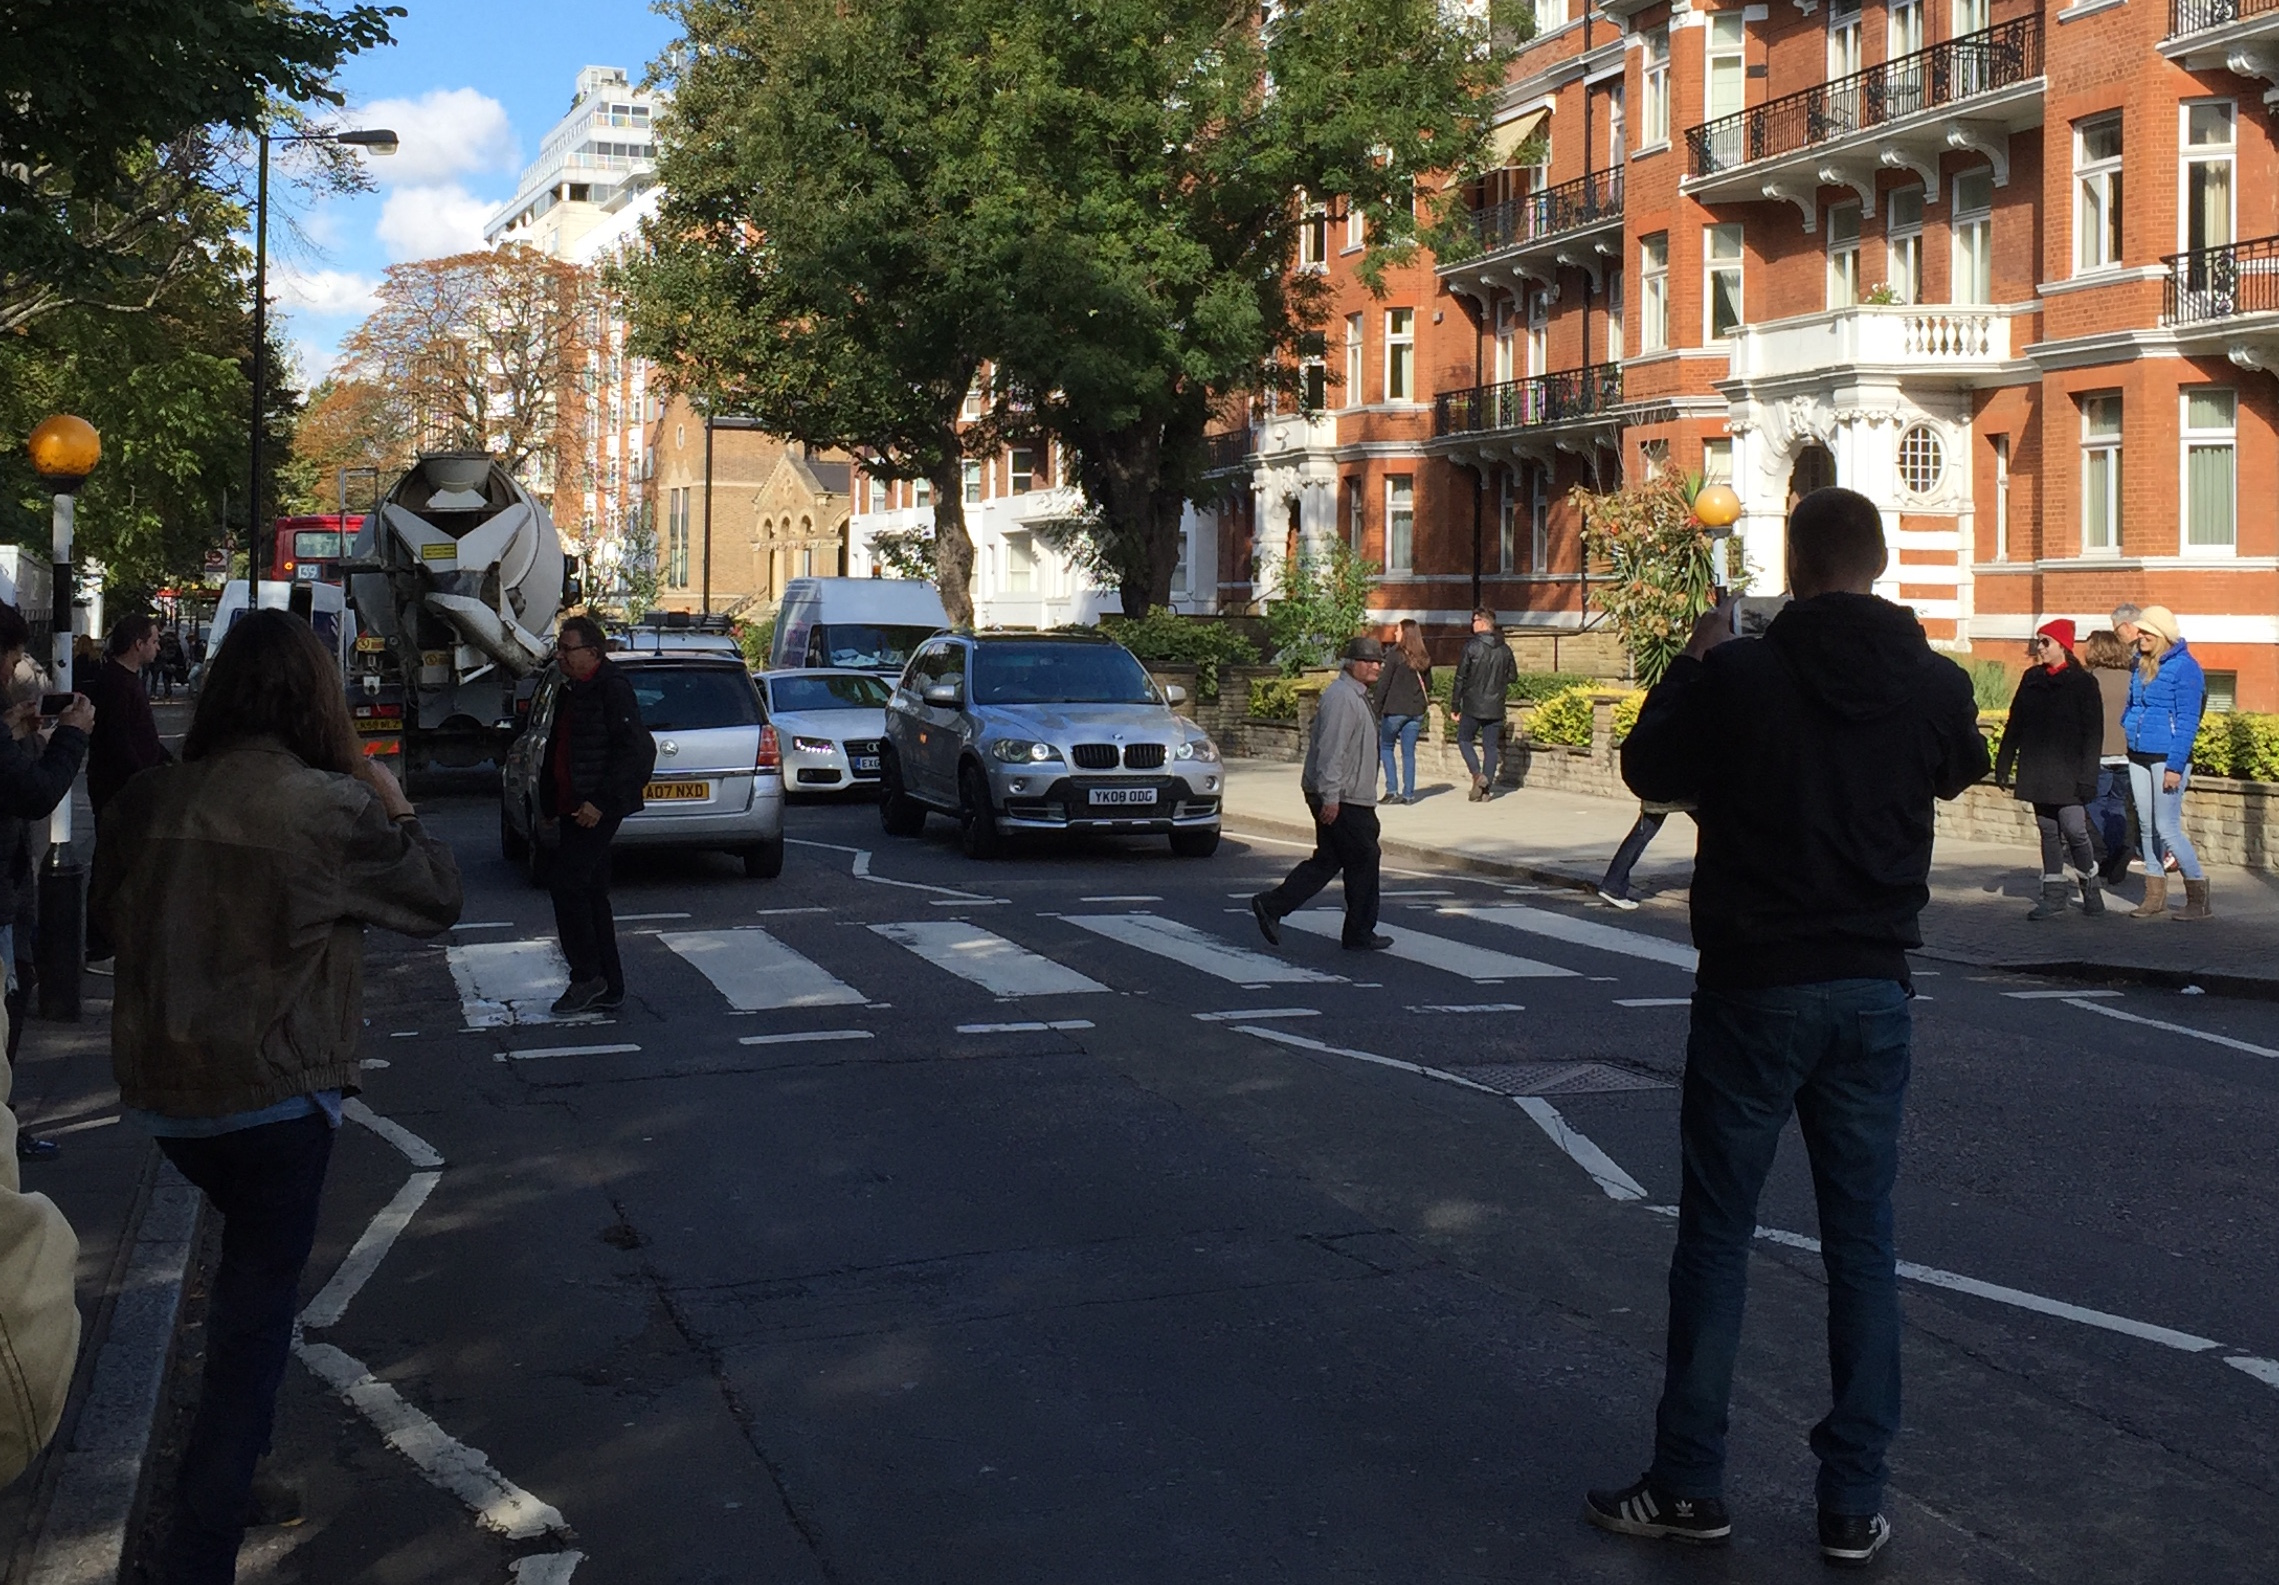 Beatles fans stopping traffic at the Abbey Road crosswalk, October 2016 (Photo: Greg Brodsky)